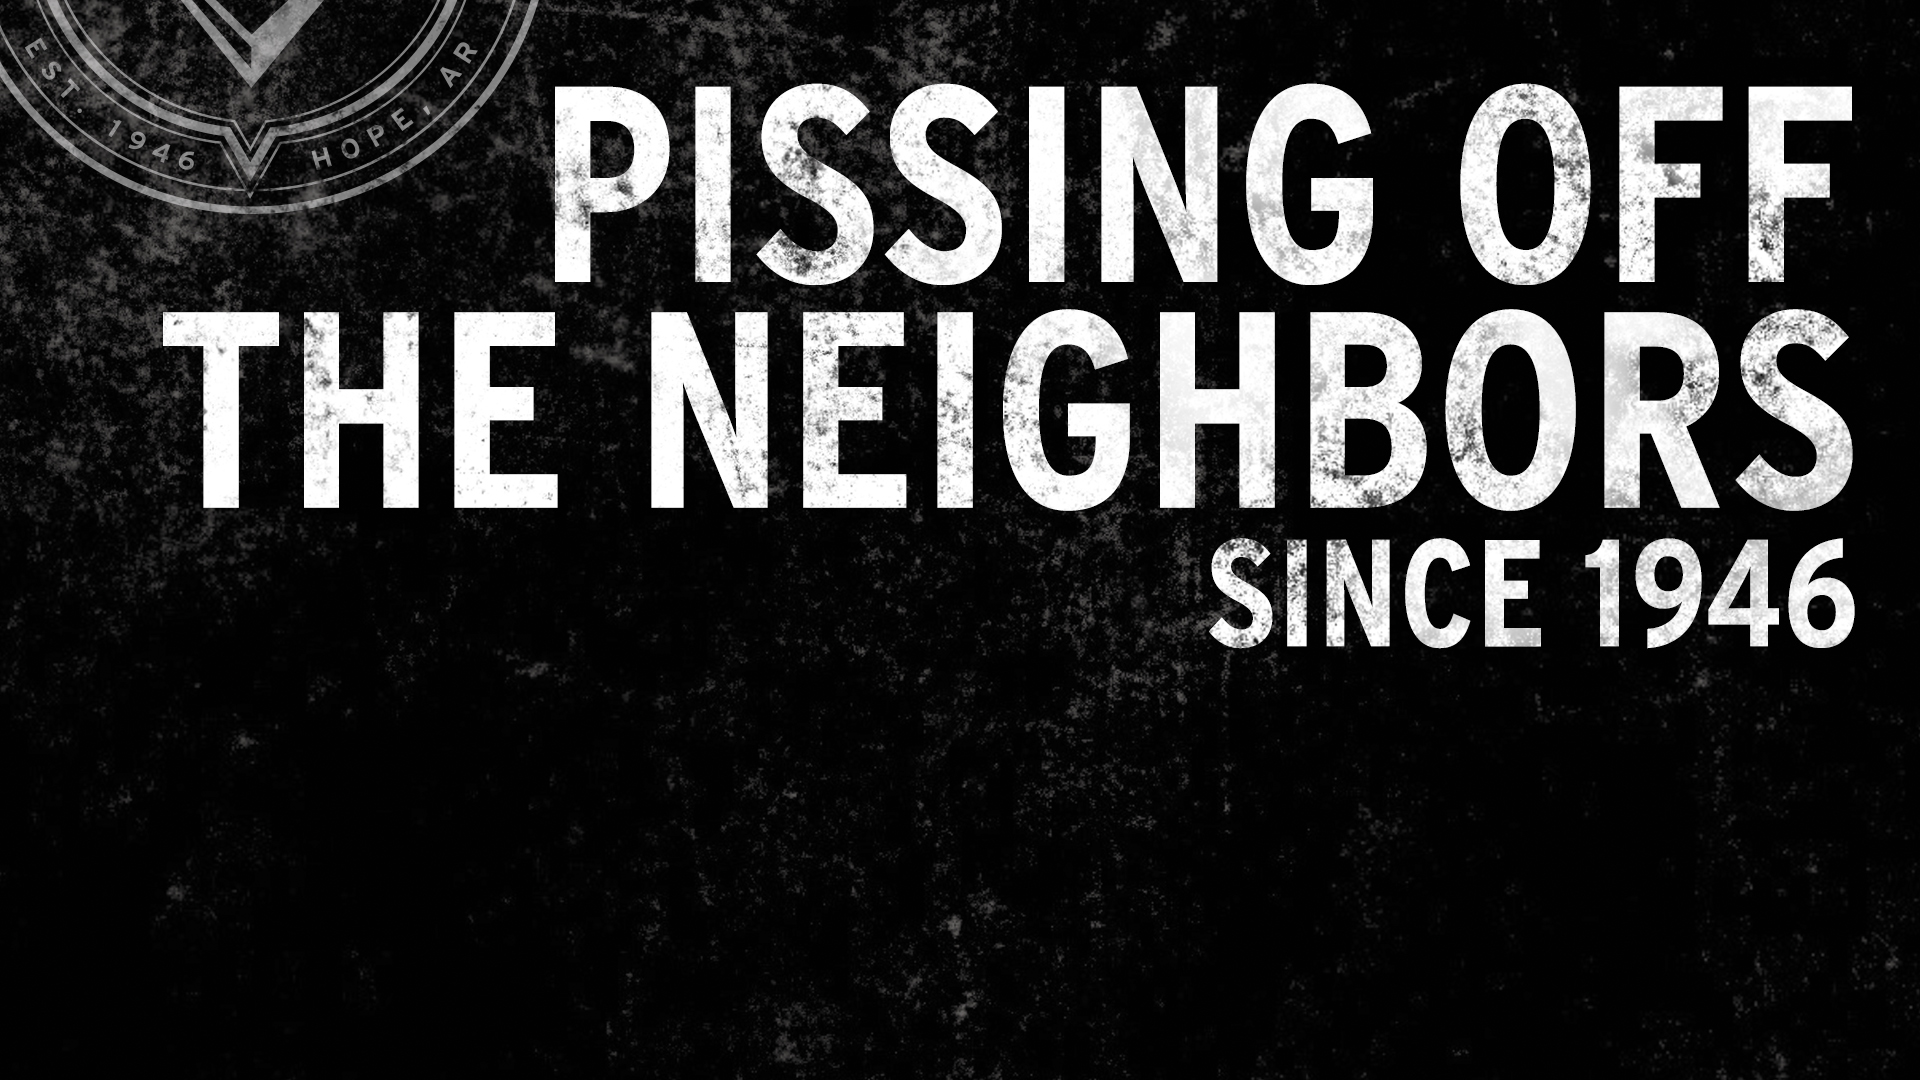 Klipsch_Wallpaper_-_1920x1080_-_NEIGHBOR